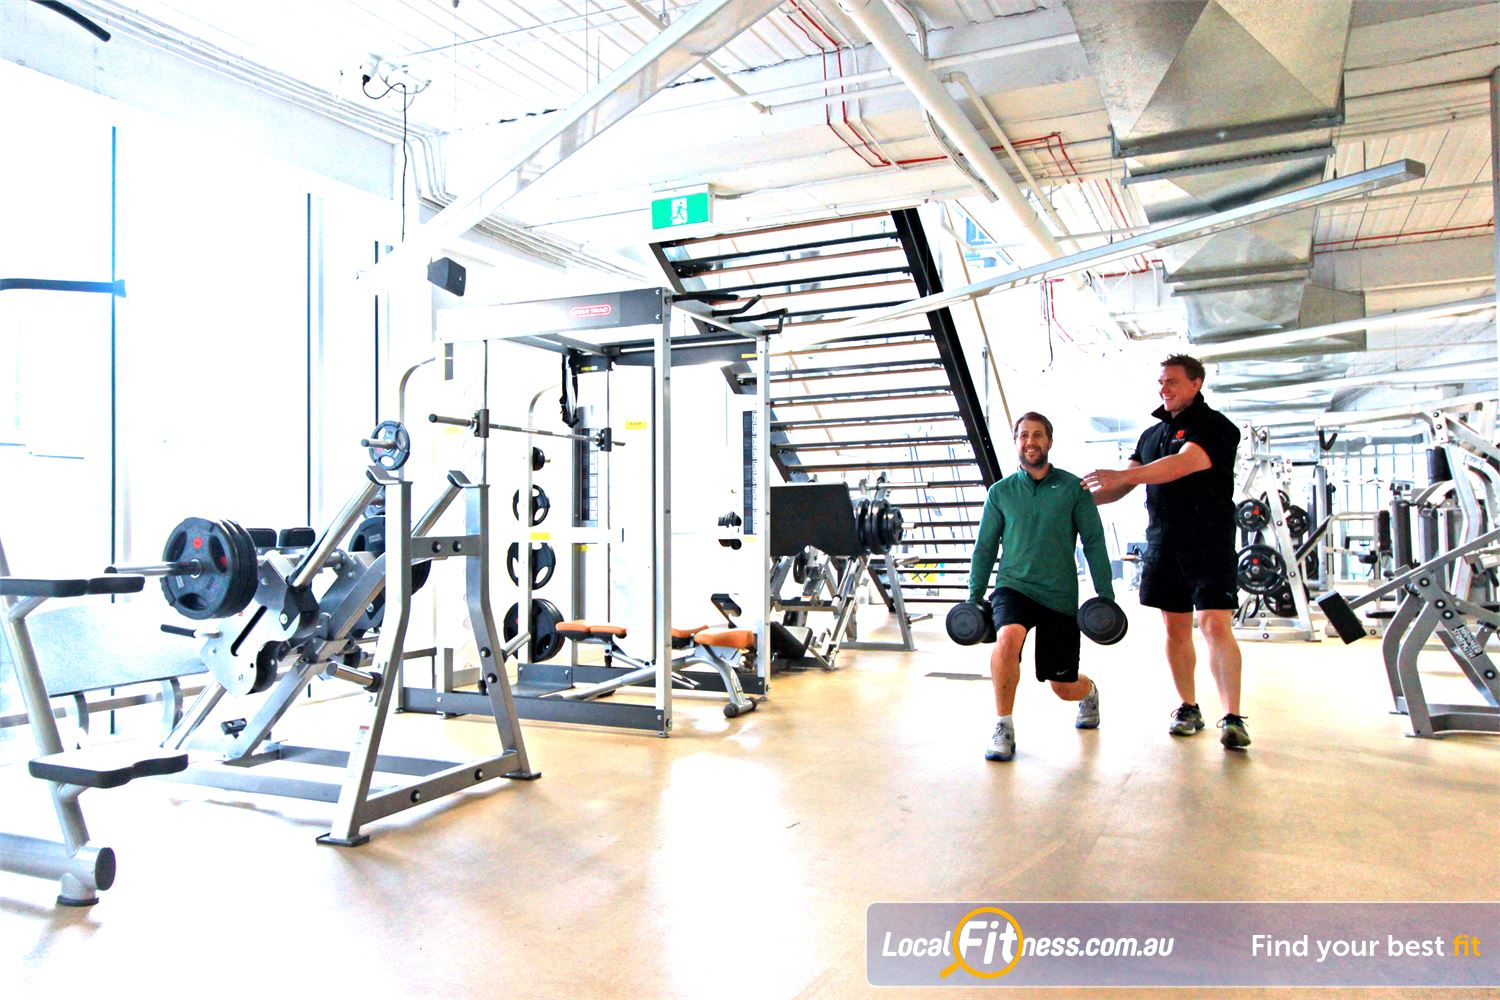 South Pacific Health Clubs Melbourne Comprehensive free-weights area at South Pacific Melbourne gym.